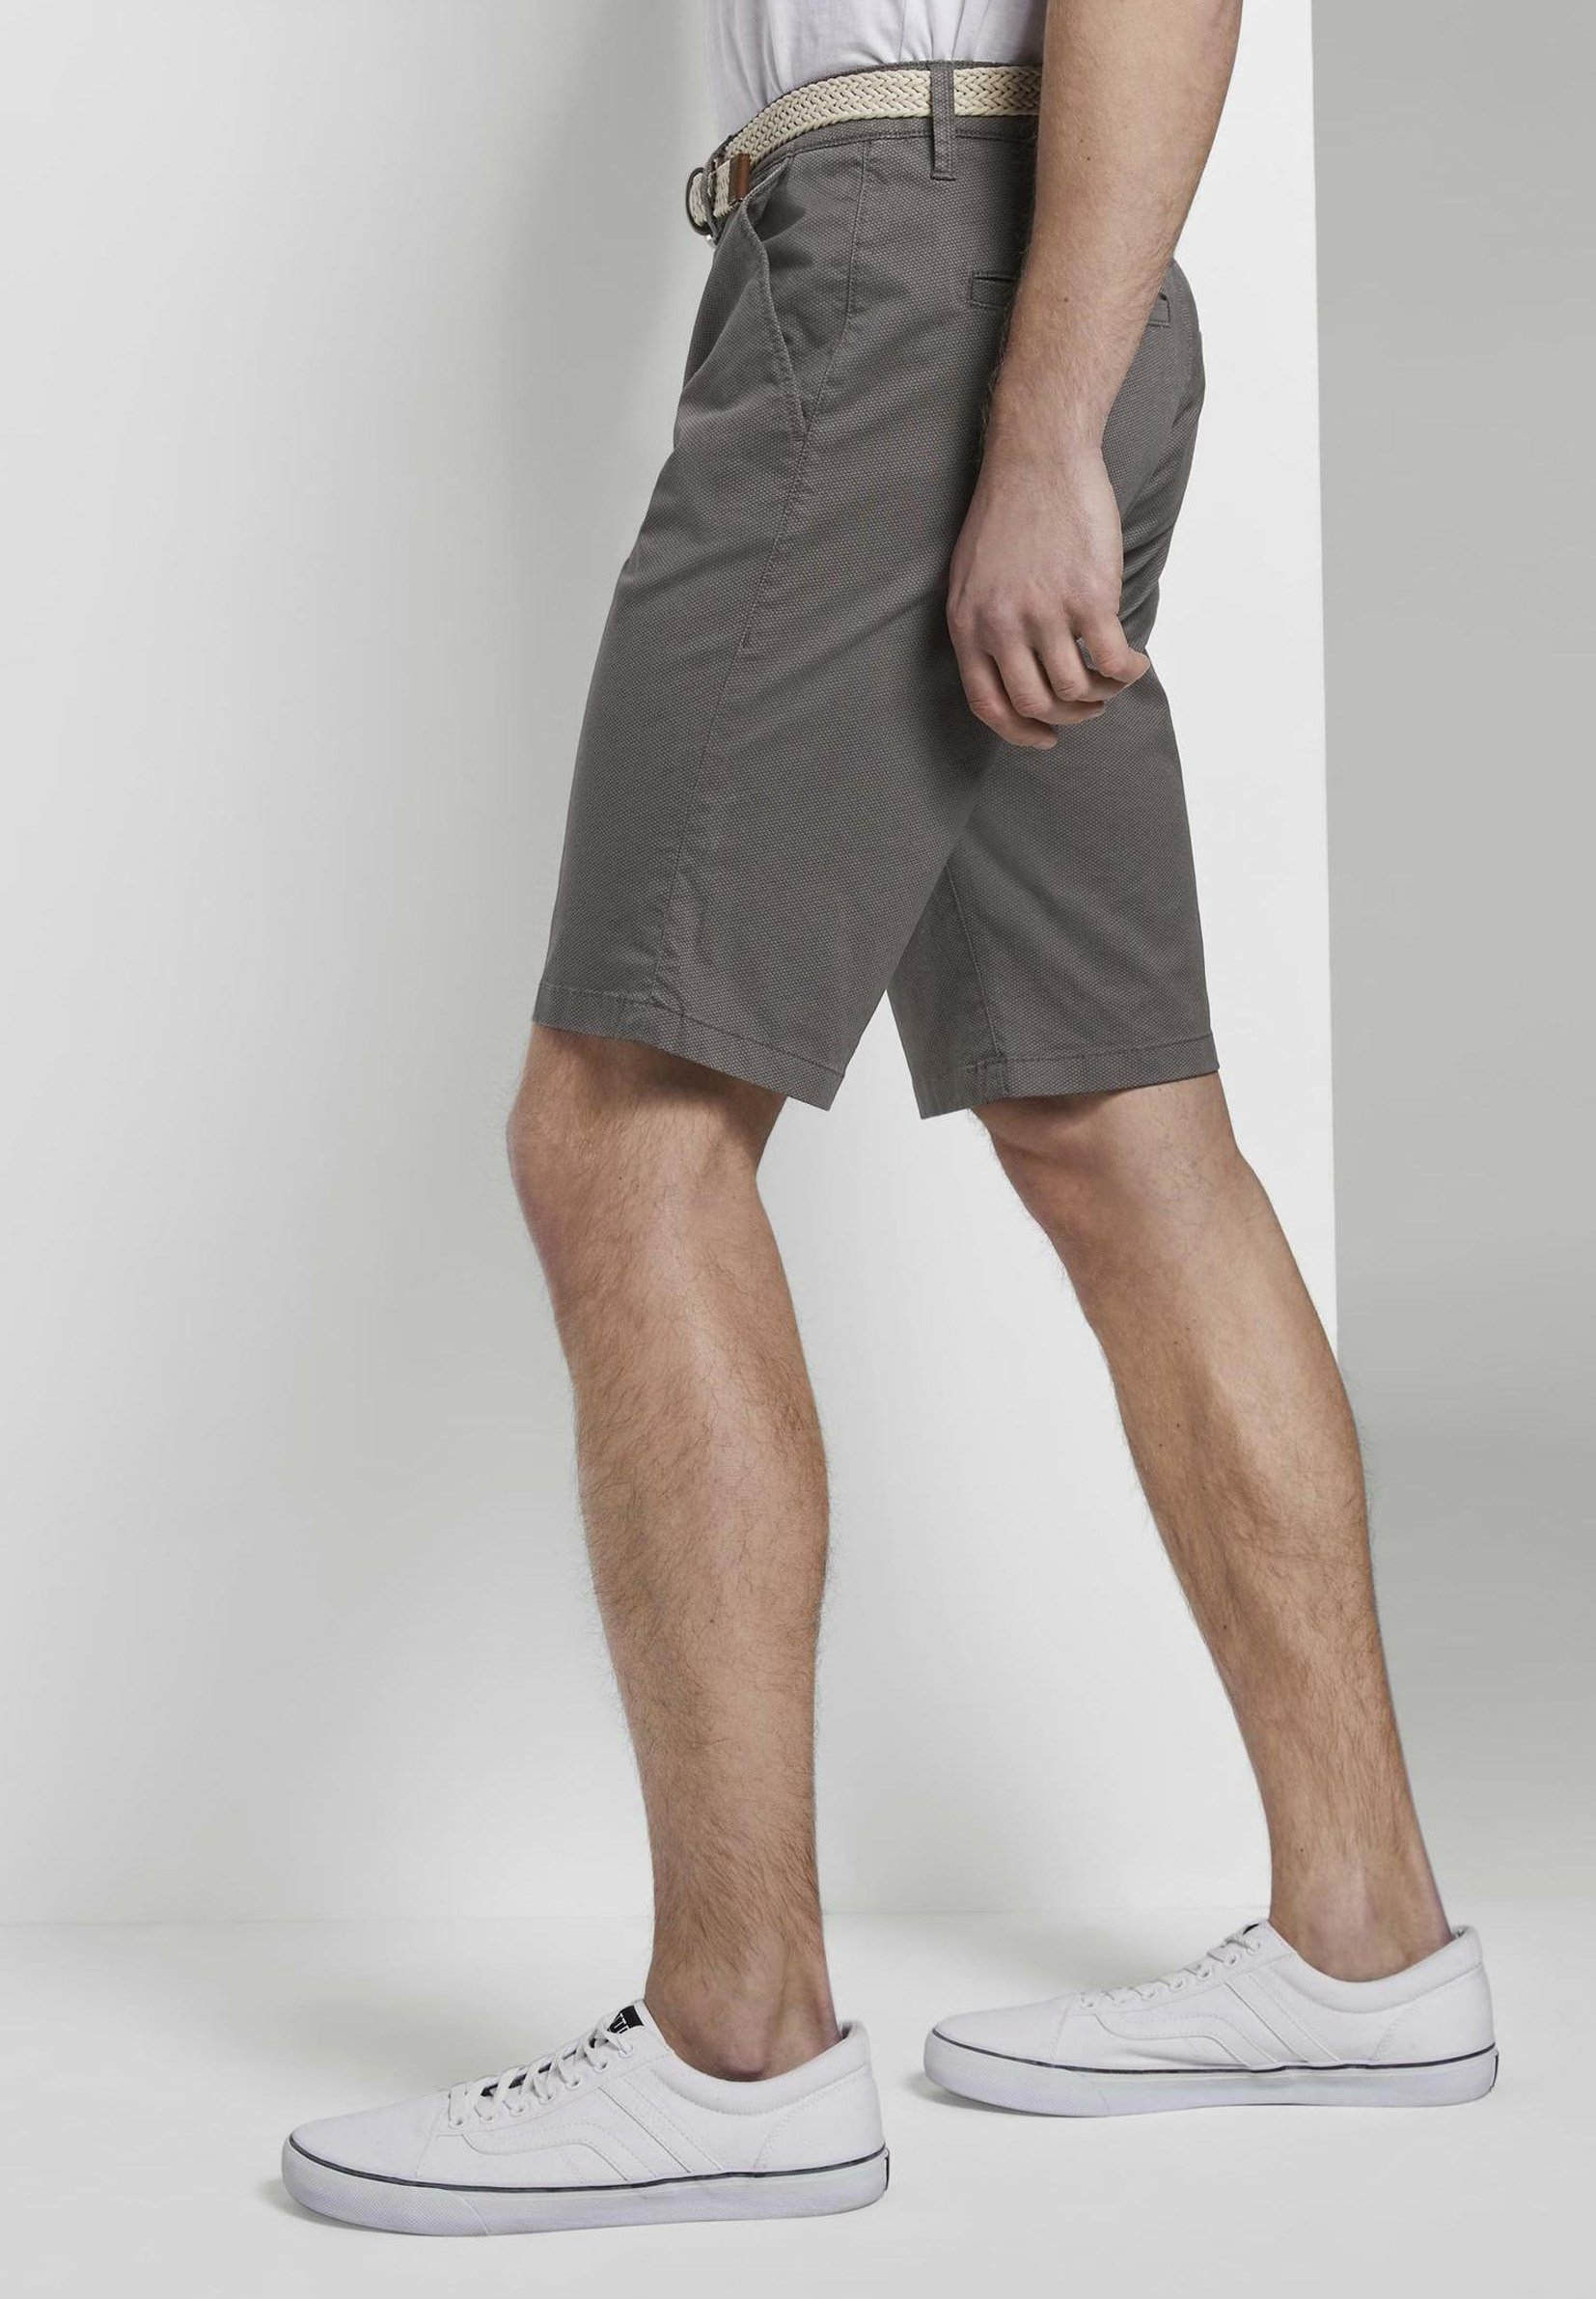 Tom Tailor Denim Shorts - Grey Mini Zig Zag Design